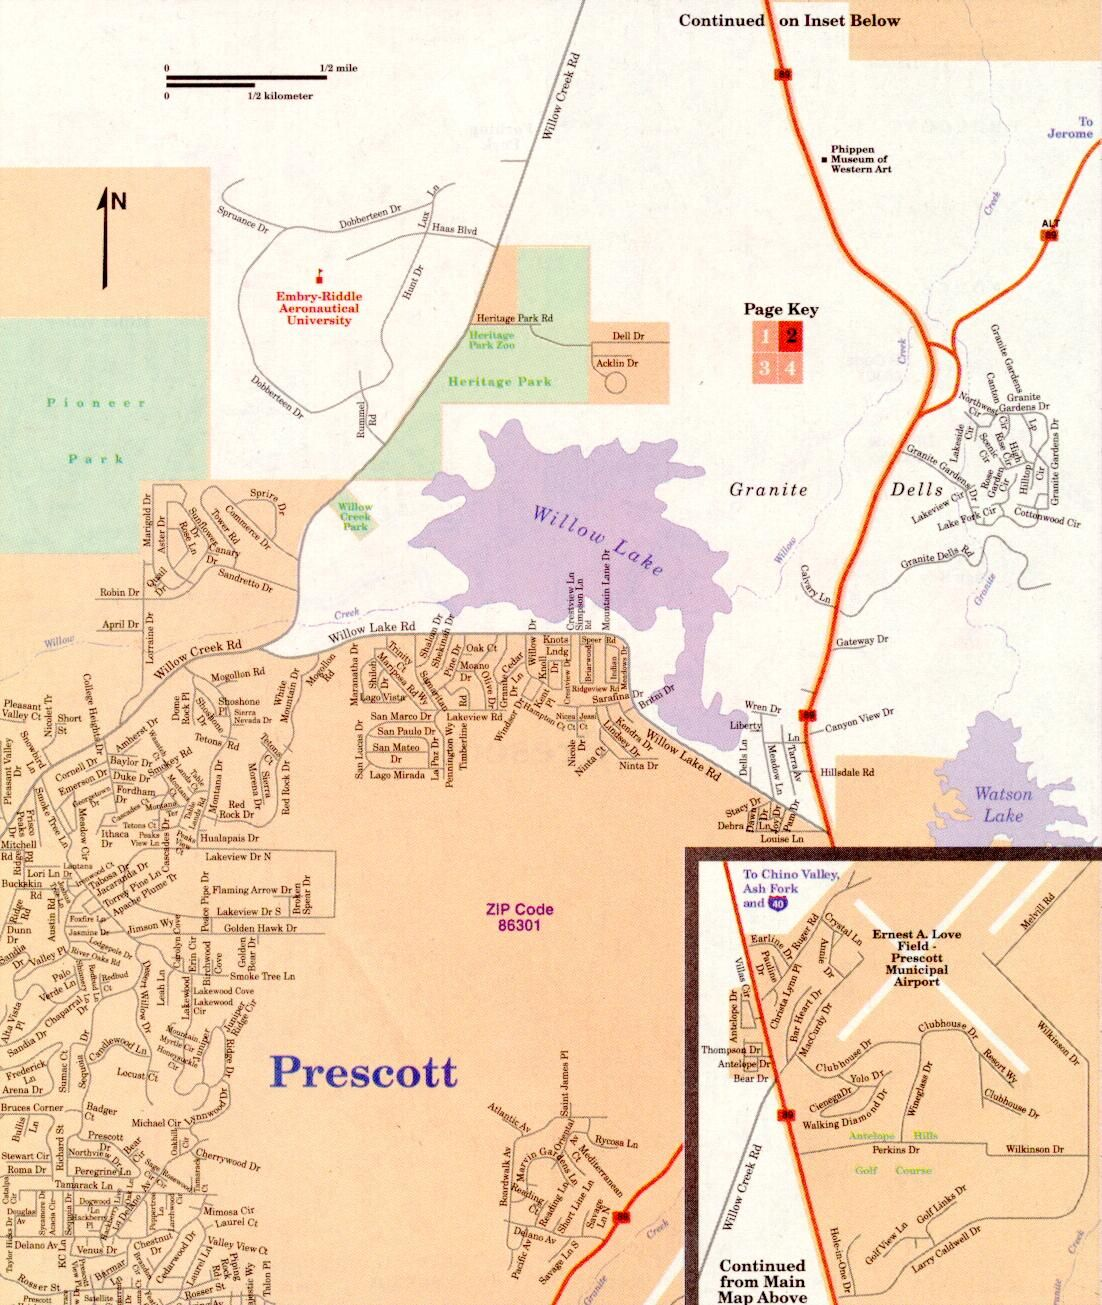 Map Of Arizona Prescott.Map Of Prescott Valley Az Prescott Arizona Maps Prescott Az Maps